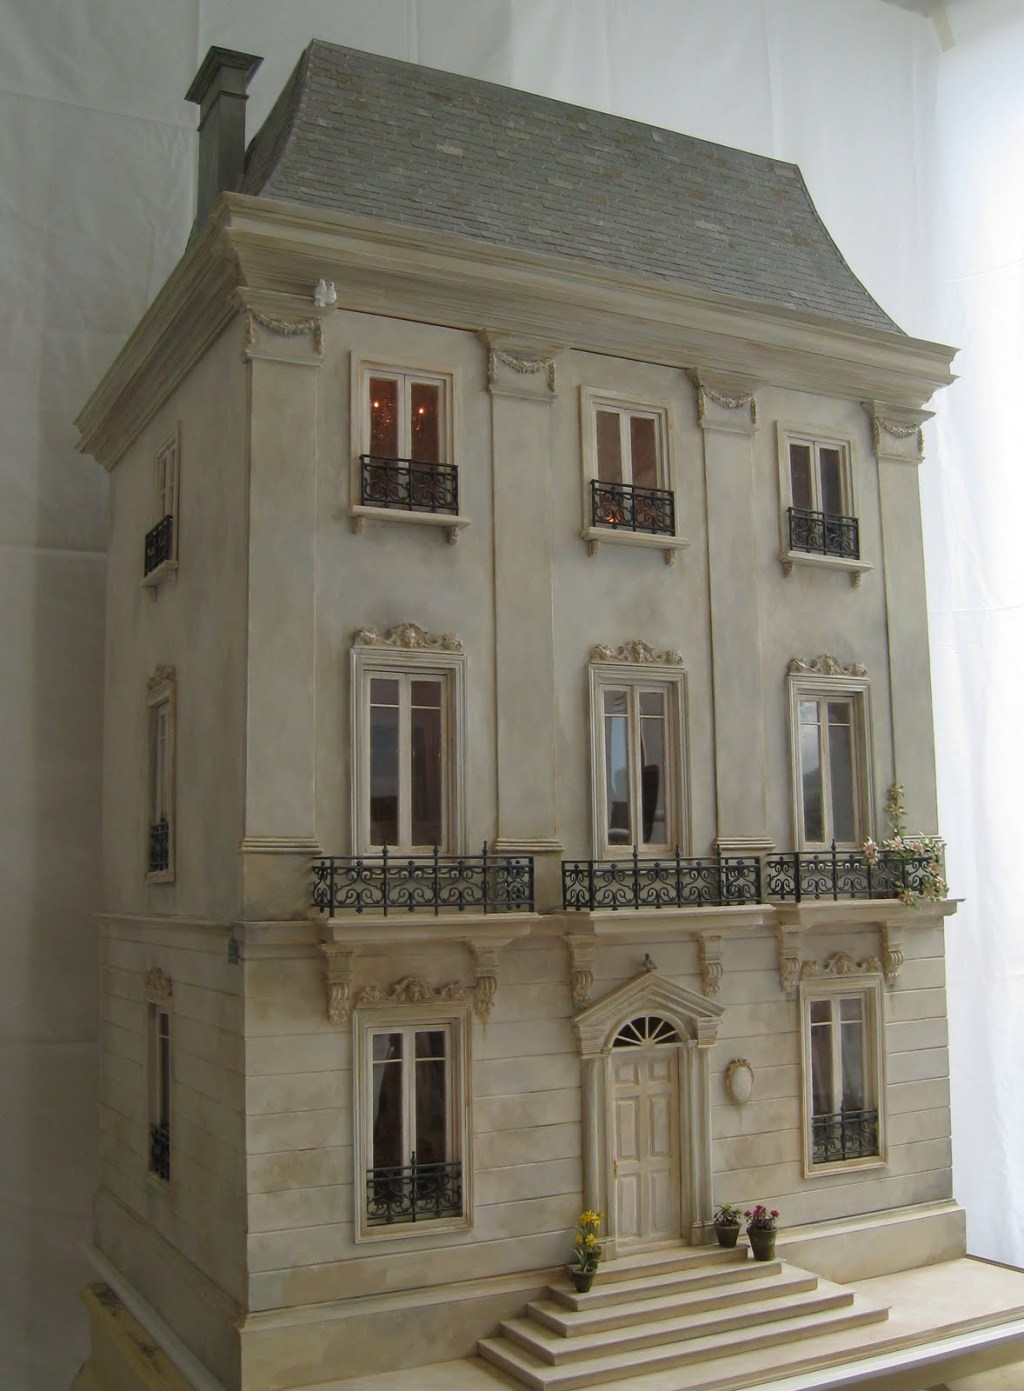 La petite maison a dollhouse five years in the making for A la maison french